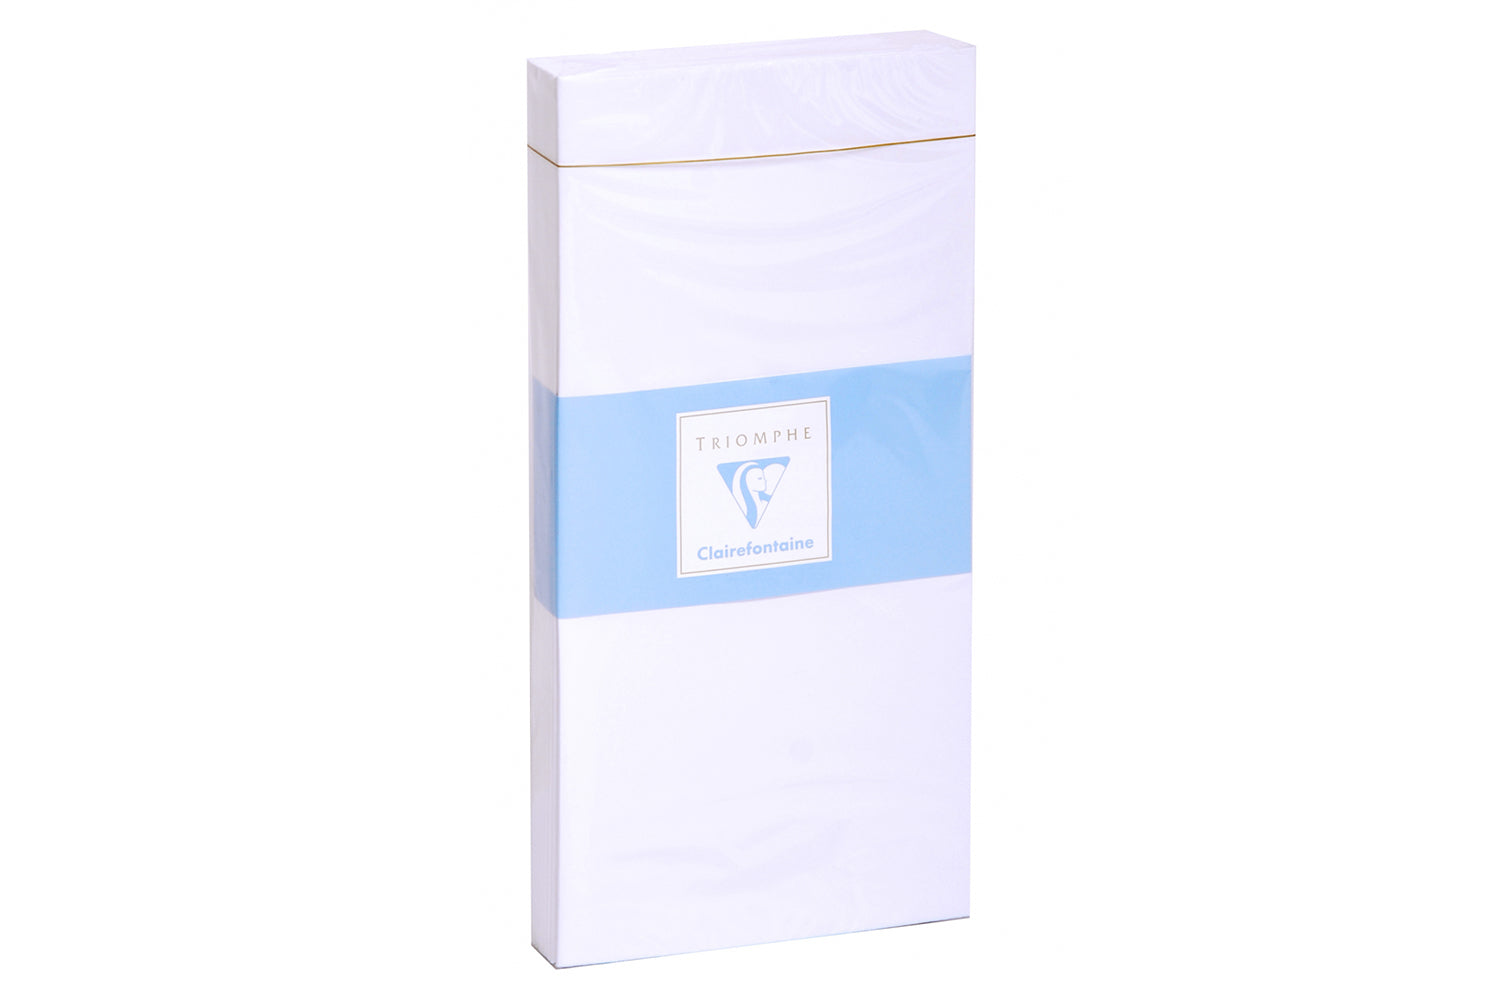 Clairefontaine Triomphe Large Envelopes